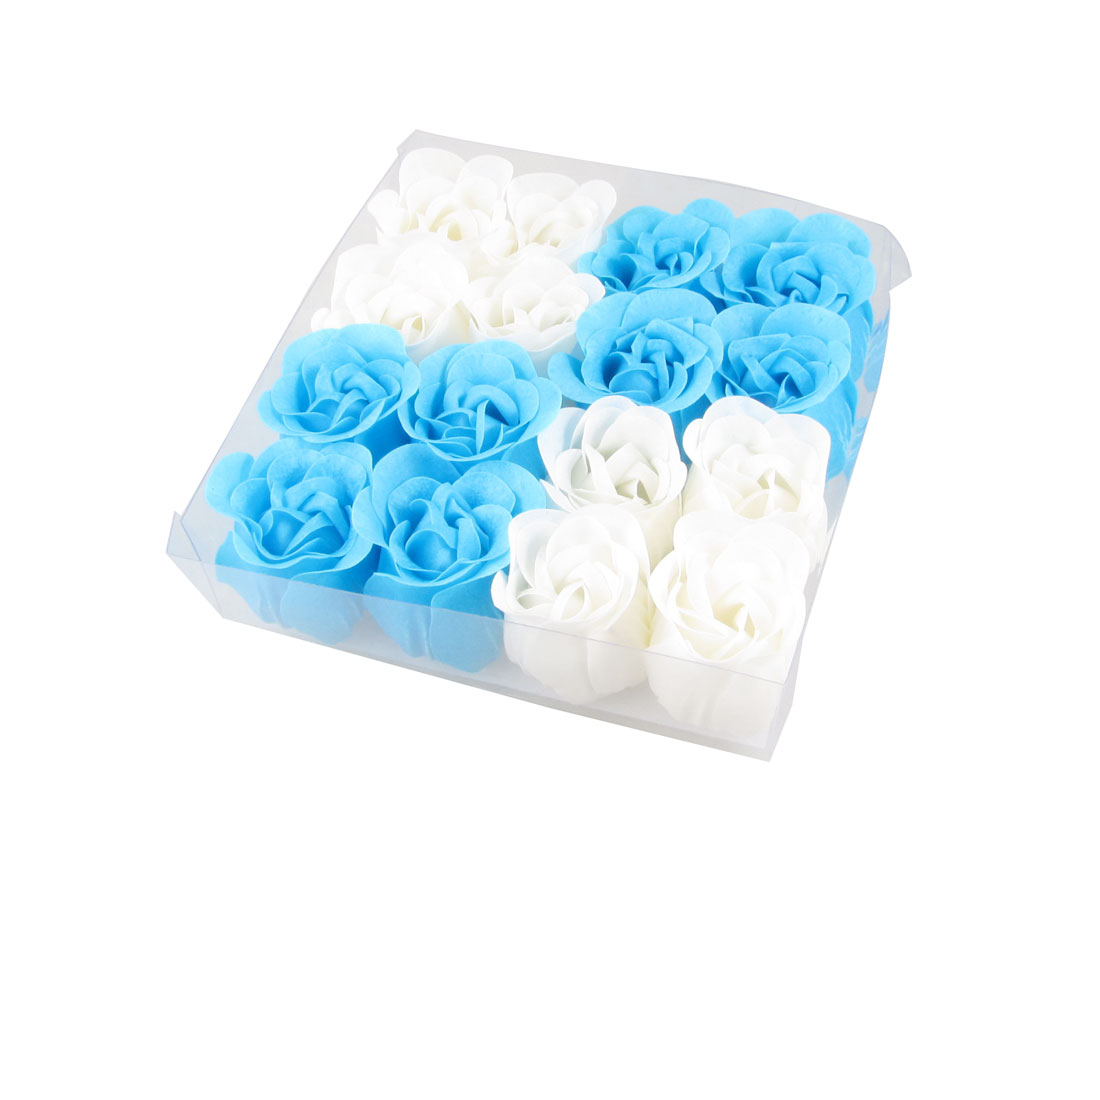 16 in 1 White Blue Scented Bath Soap Rose Petal in Square Box